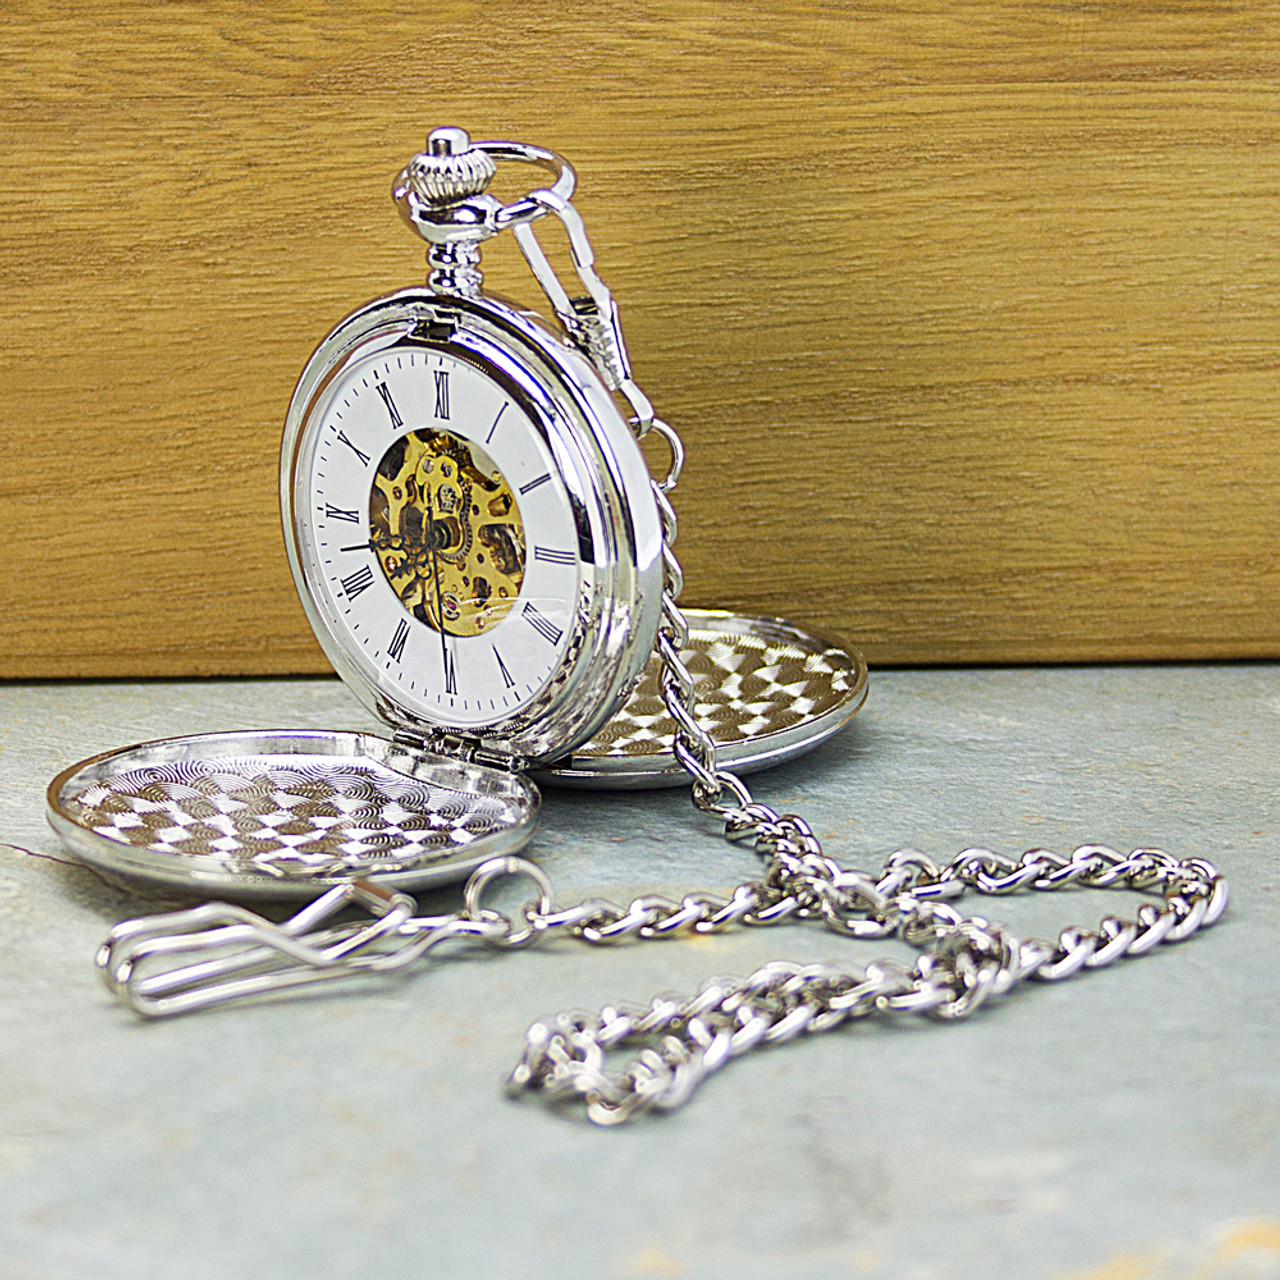 caf61ef0e7c45 Stylish engraved mechanical pocket watch with golden cut out displaying the  mechanism working inside